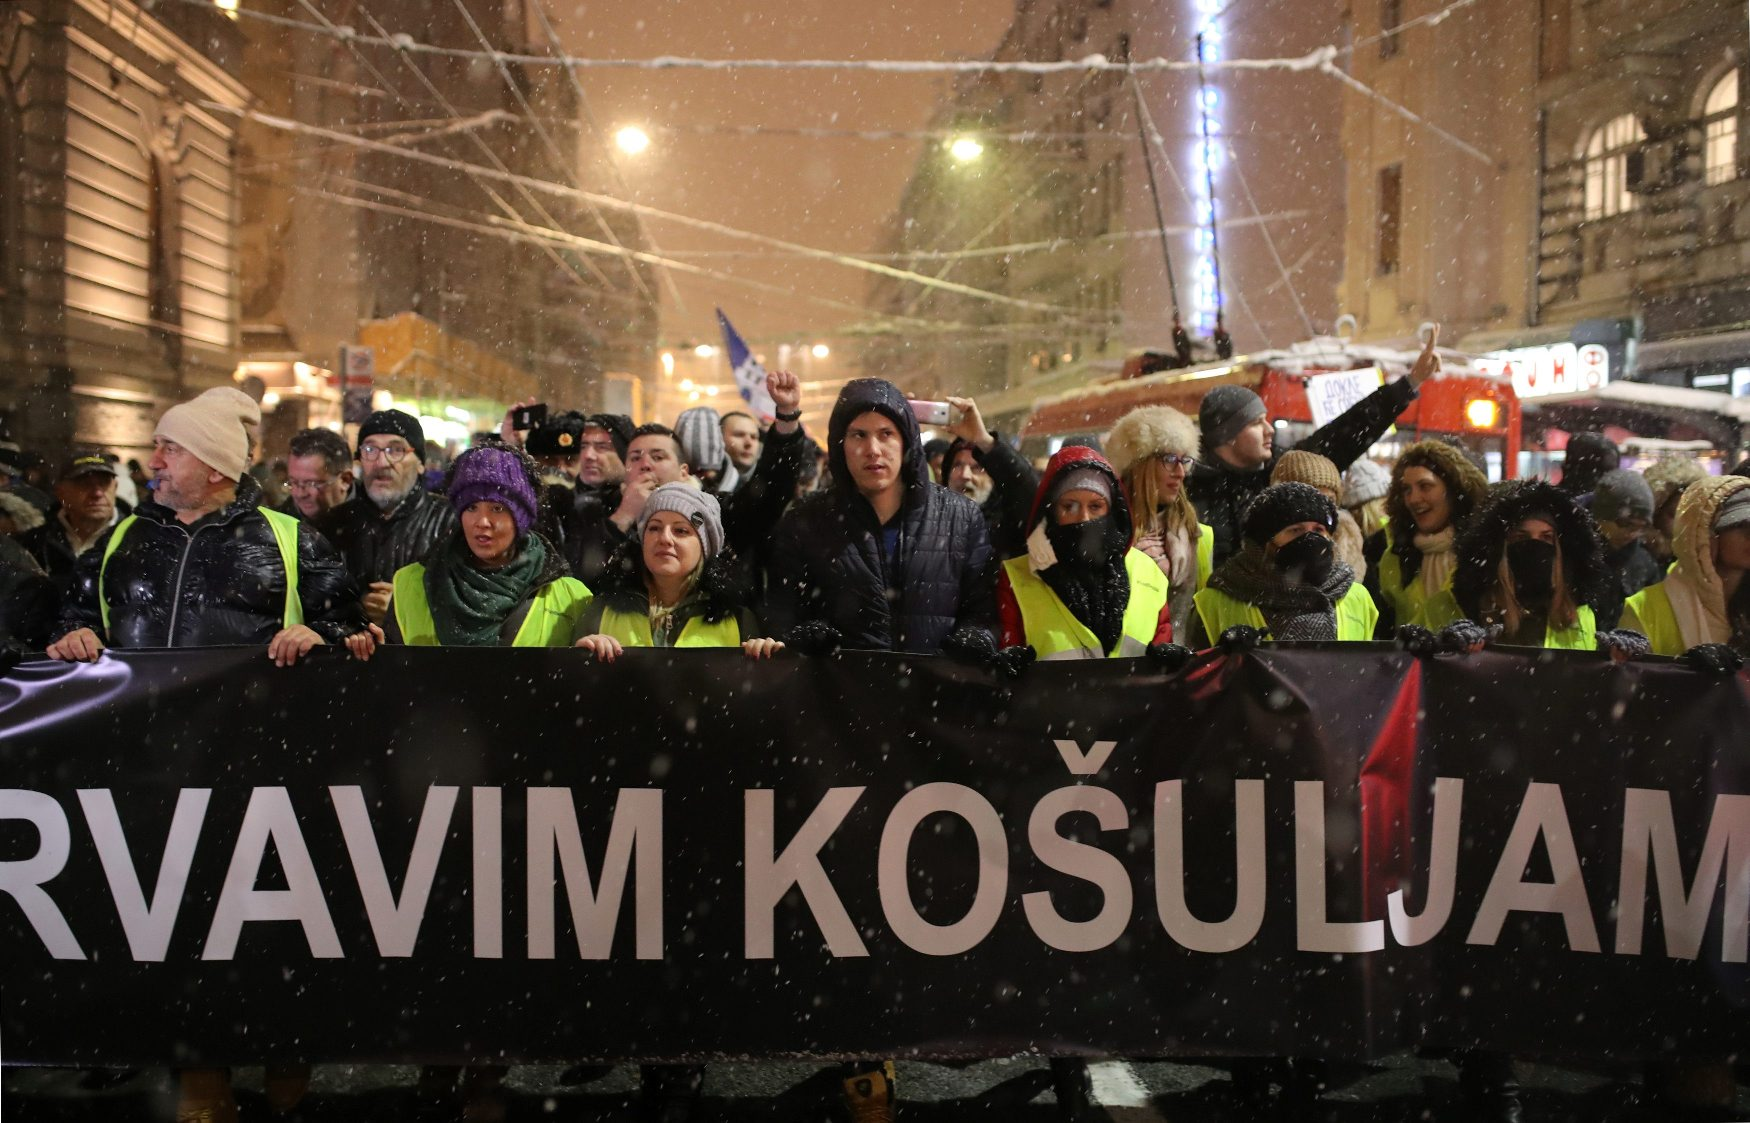 2018-12-15T173412Z_782067362_RC19EB415500_RTRMADP_3_SERBIA-PROTESTS